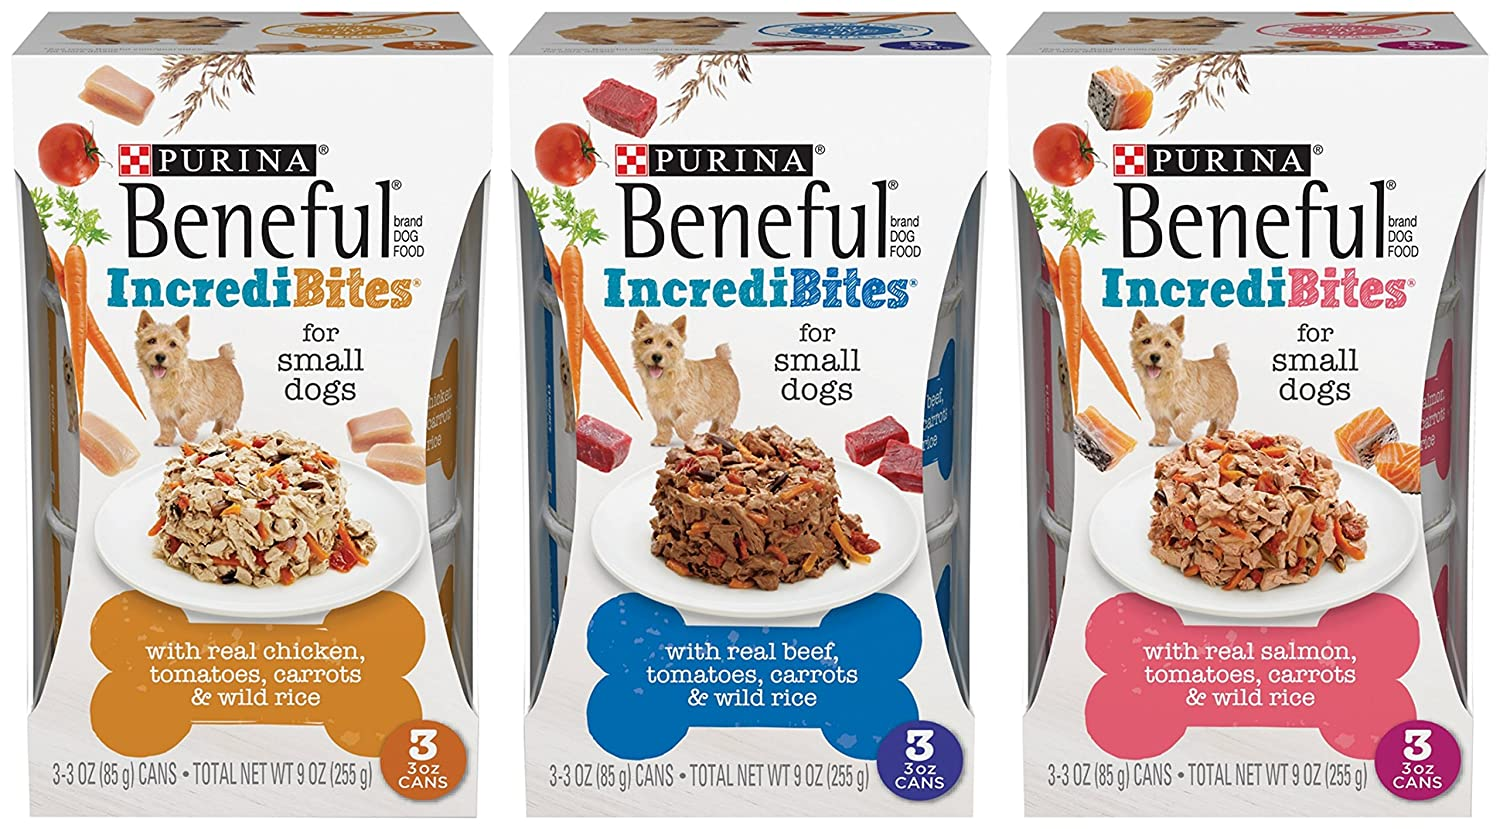 Purina Beneful Incredibites for Small Dogs Variety Pack Dog Food, 9 Cans (3 oz Each)